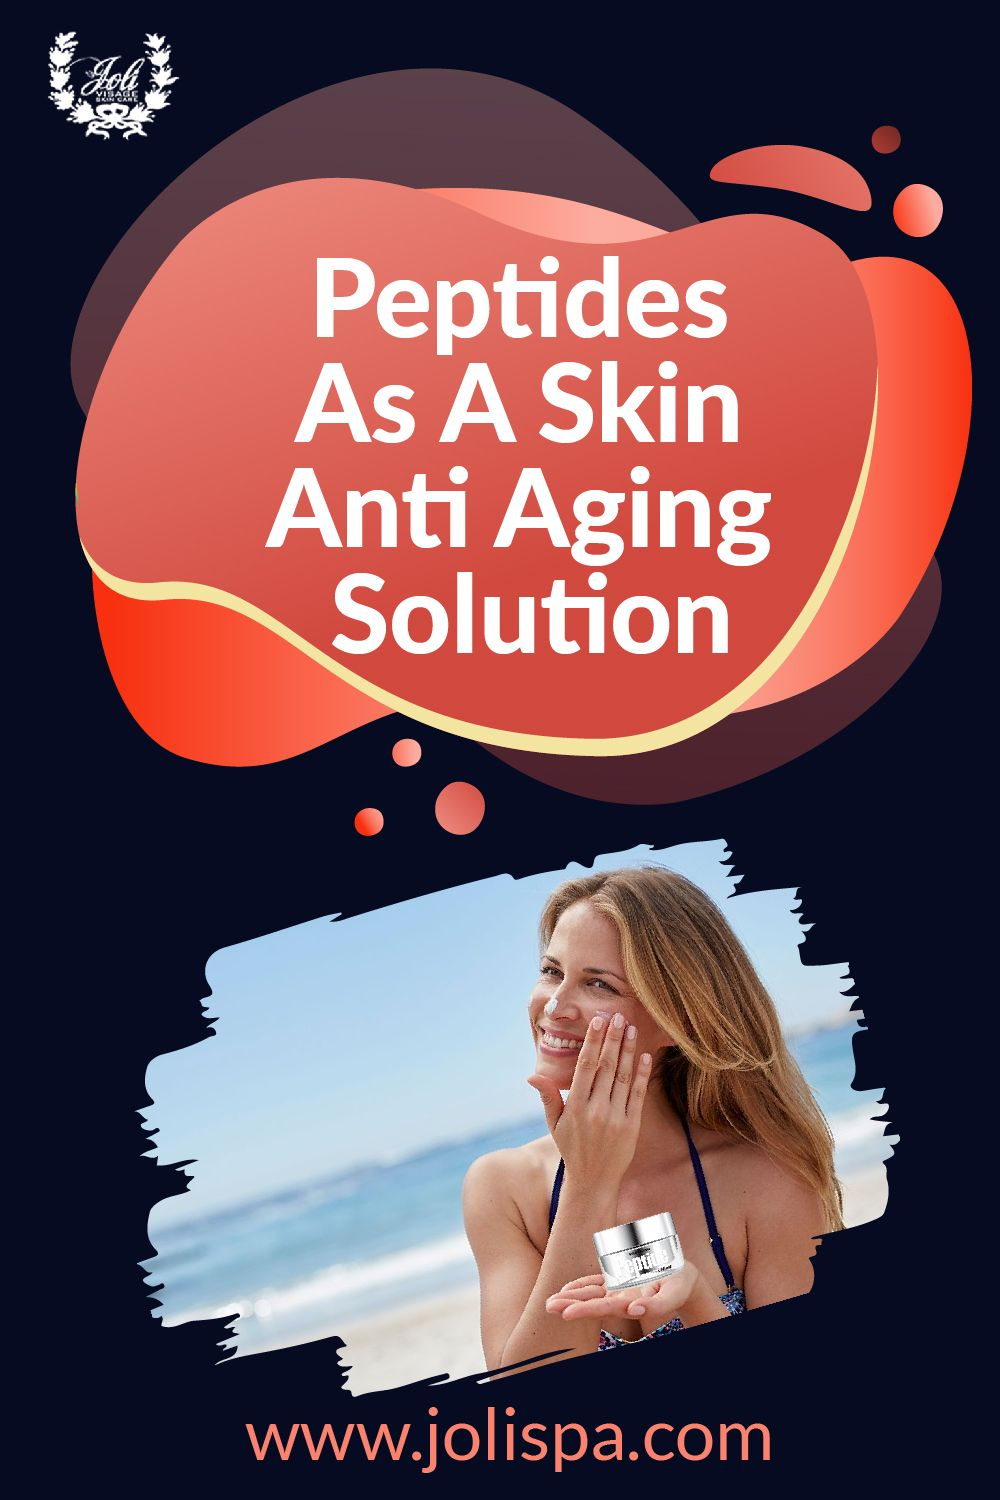 Discover Why And How Peptides Work In Anti Aging Skin Care Dig Deep Into The Science And Be In The Know I In 2020 Anti Aging Solution Anti Aging Skin Care